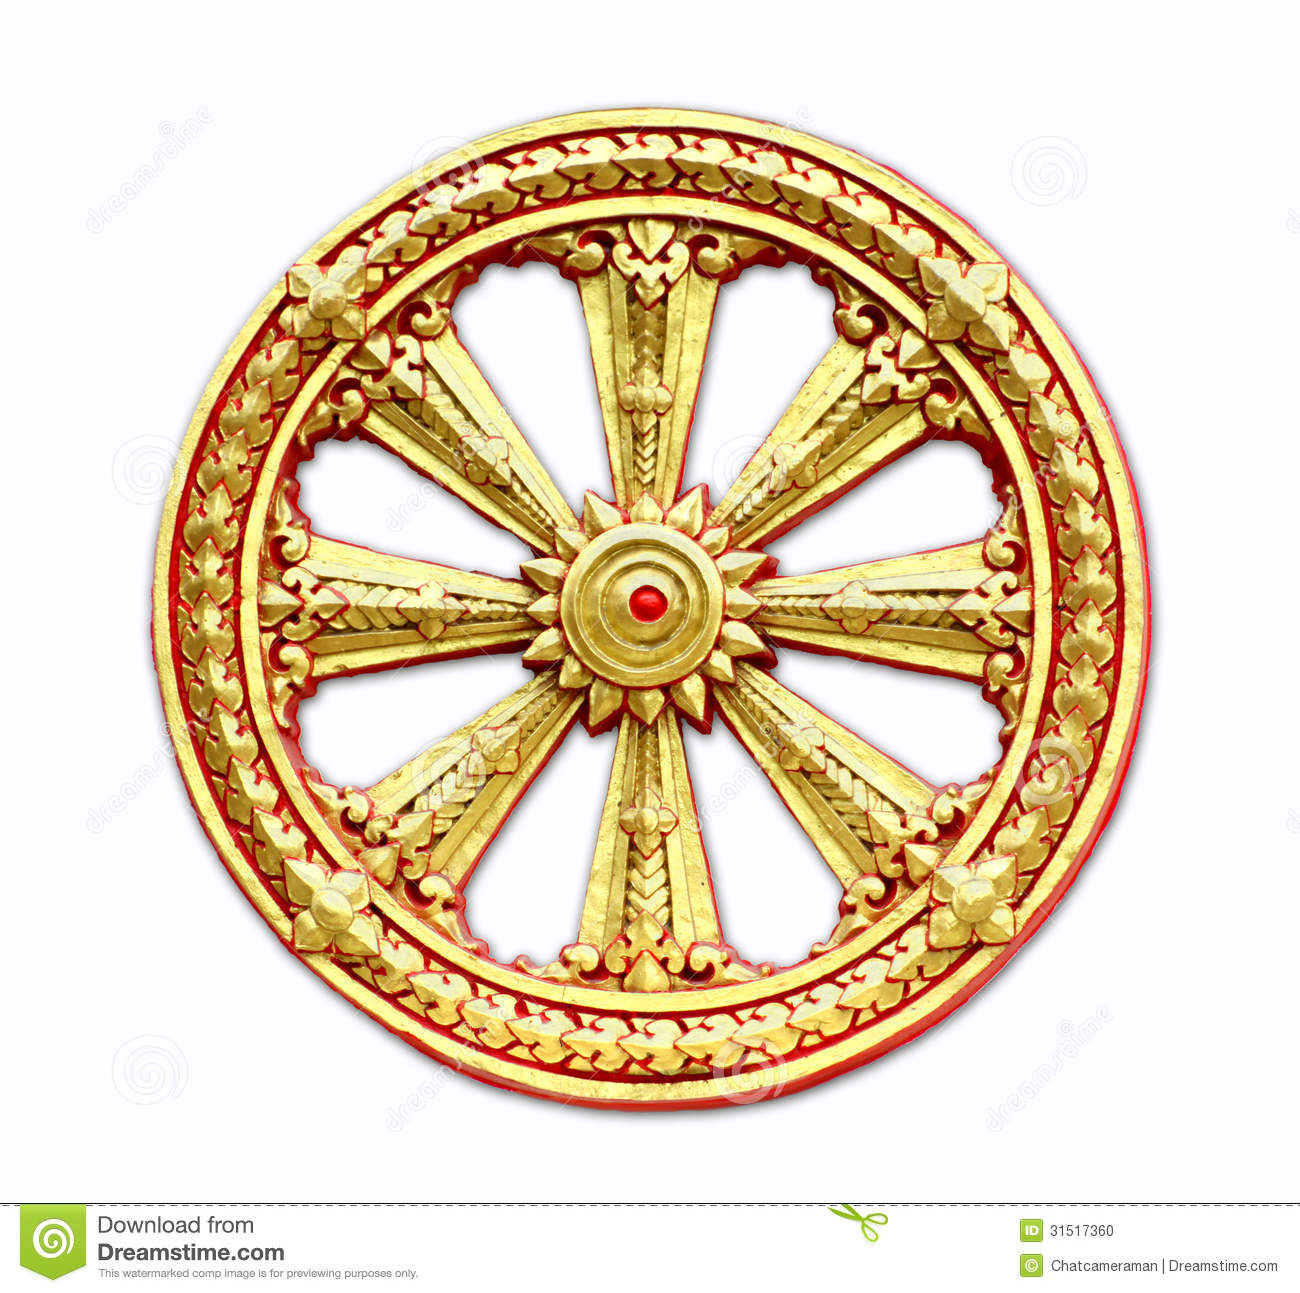 Buddhist symbols stock photo image of circular holy 31517360 buddhist symbols buycottarizona